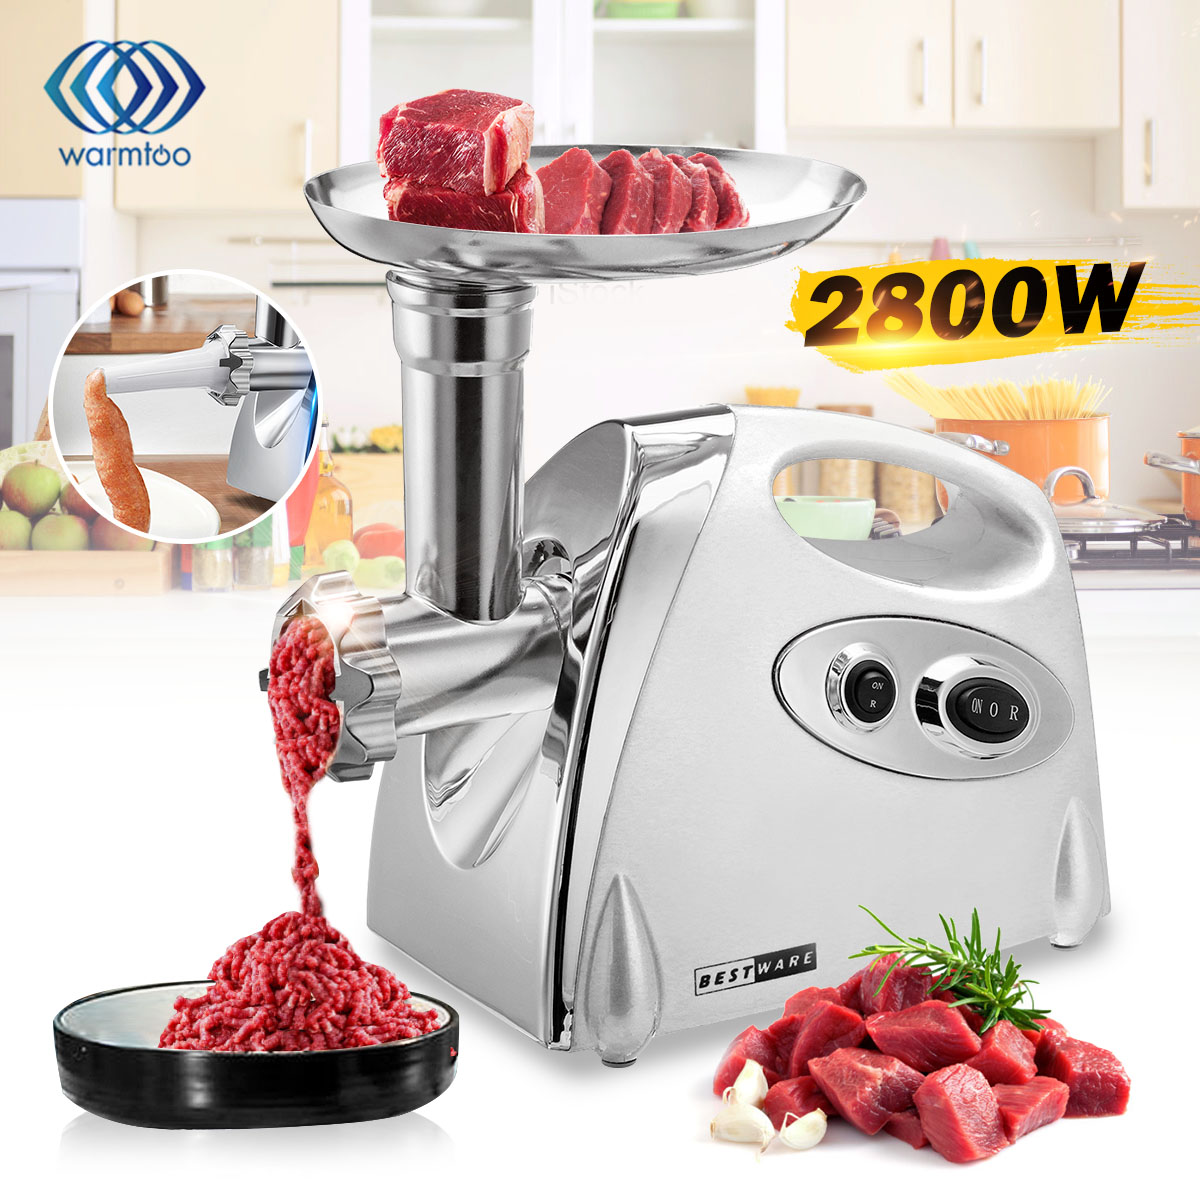 WARMTOO Electric Meat Grinder Stainless Steel Powerful Electric Grinder Sausage Stuffer Meat Mincer Slicer For Kitchen Appliance